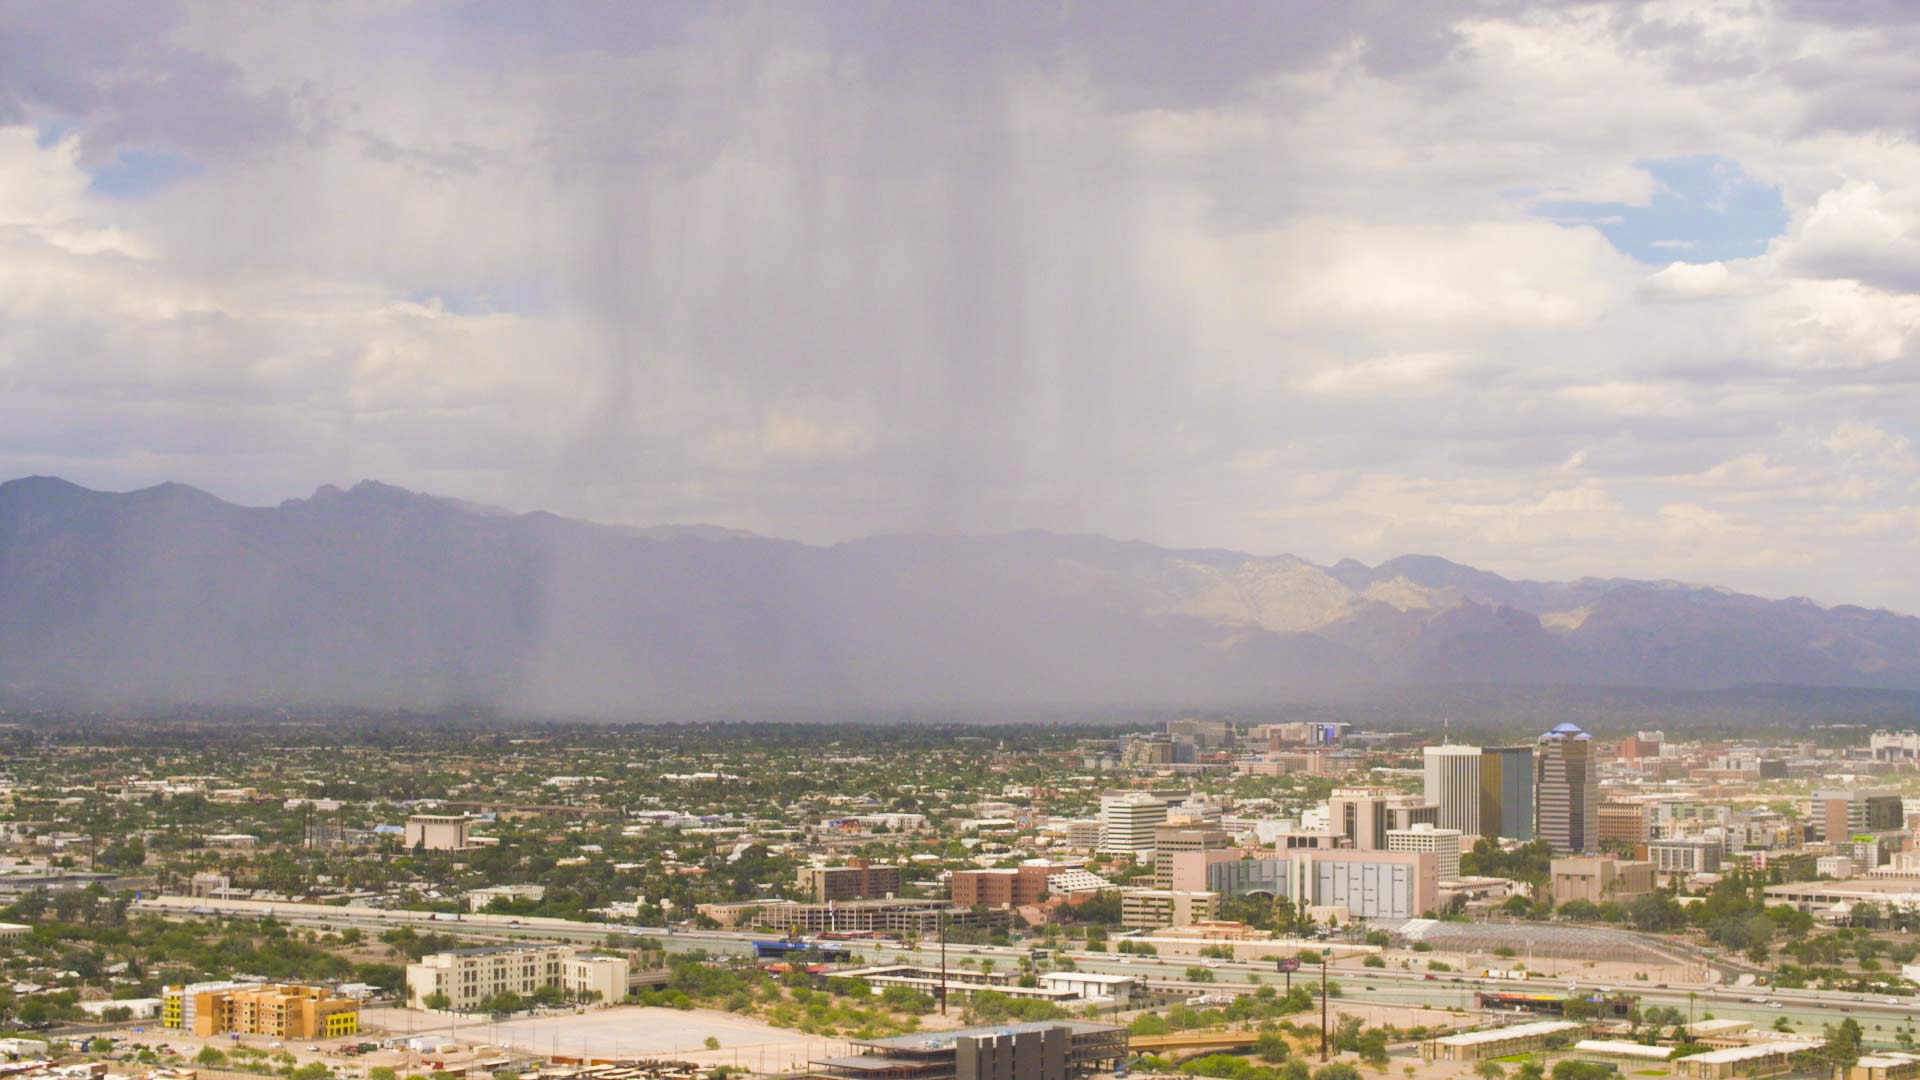 Rain and sunlight interact over Tucson, July 5, 2018.